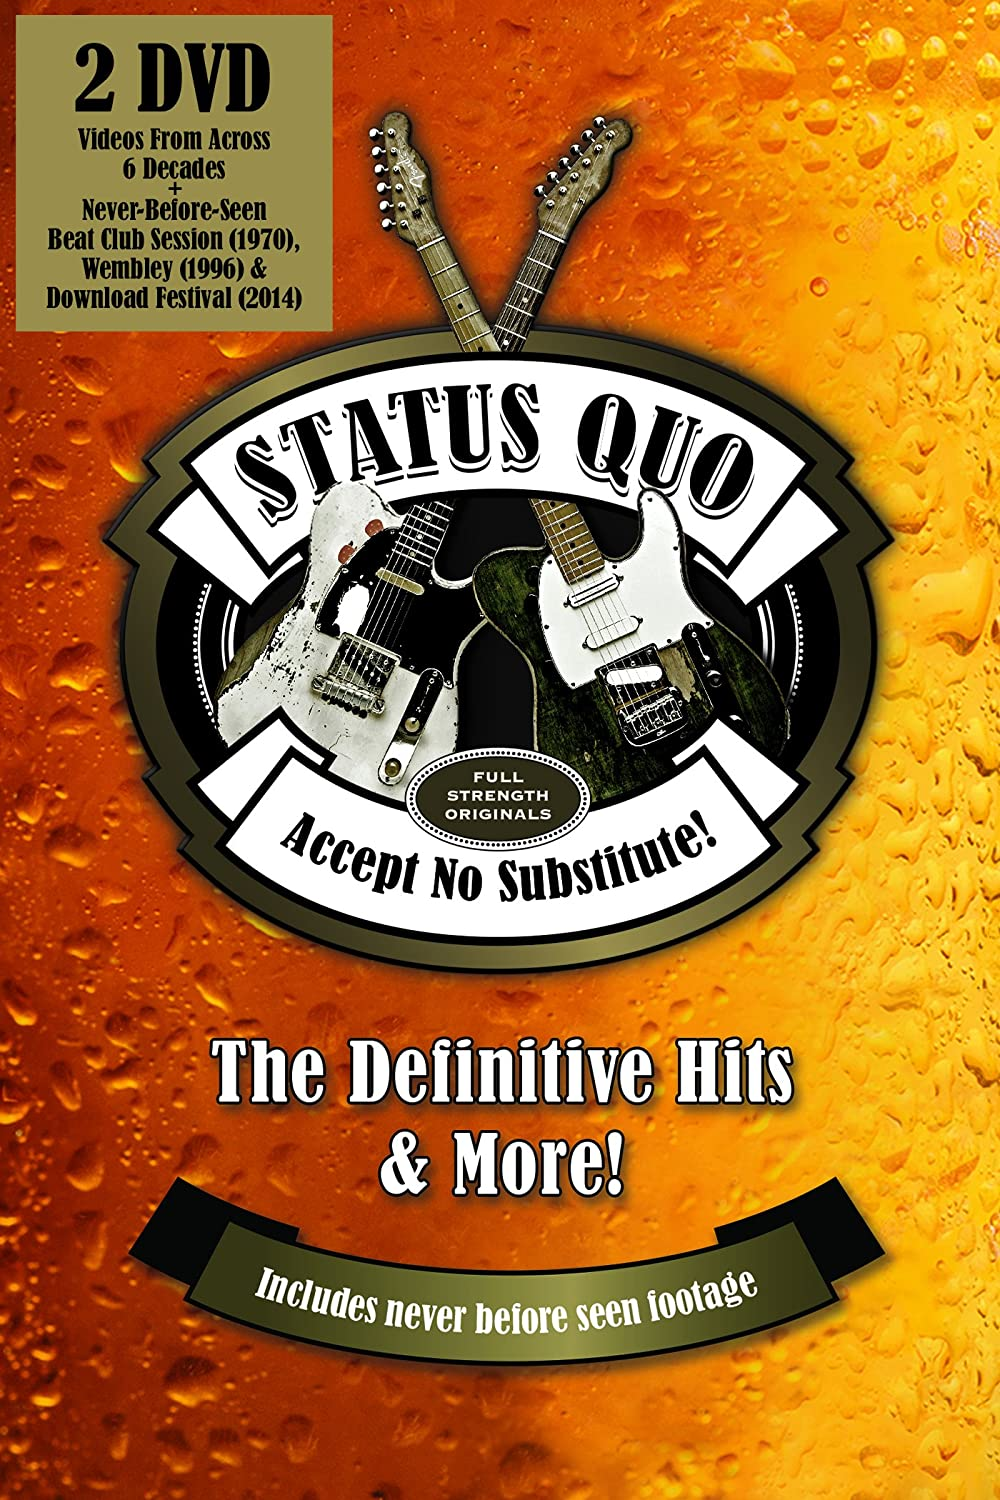 STATUS QUO Accept No Substitute: The Definitive Hits & More DVD